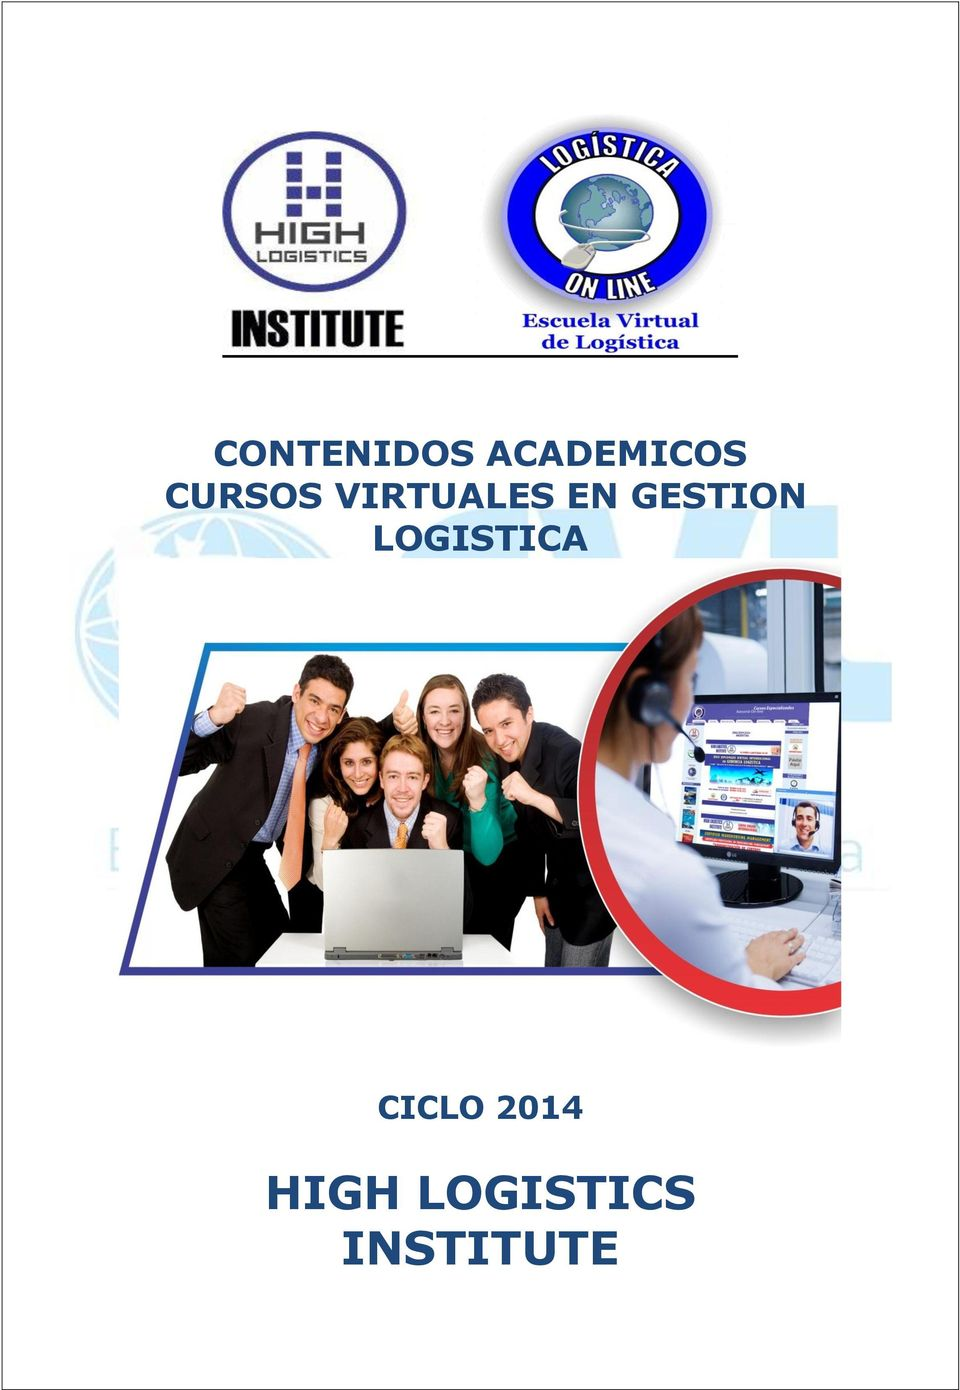 GESTION LOGISTICA CICLO